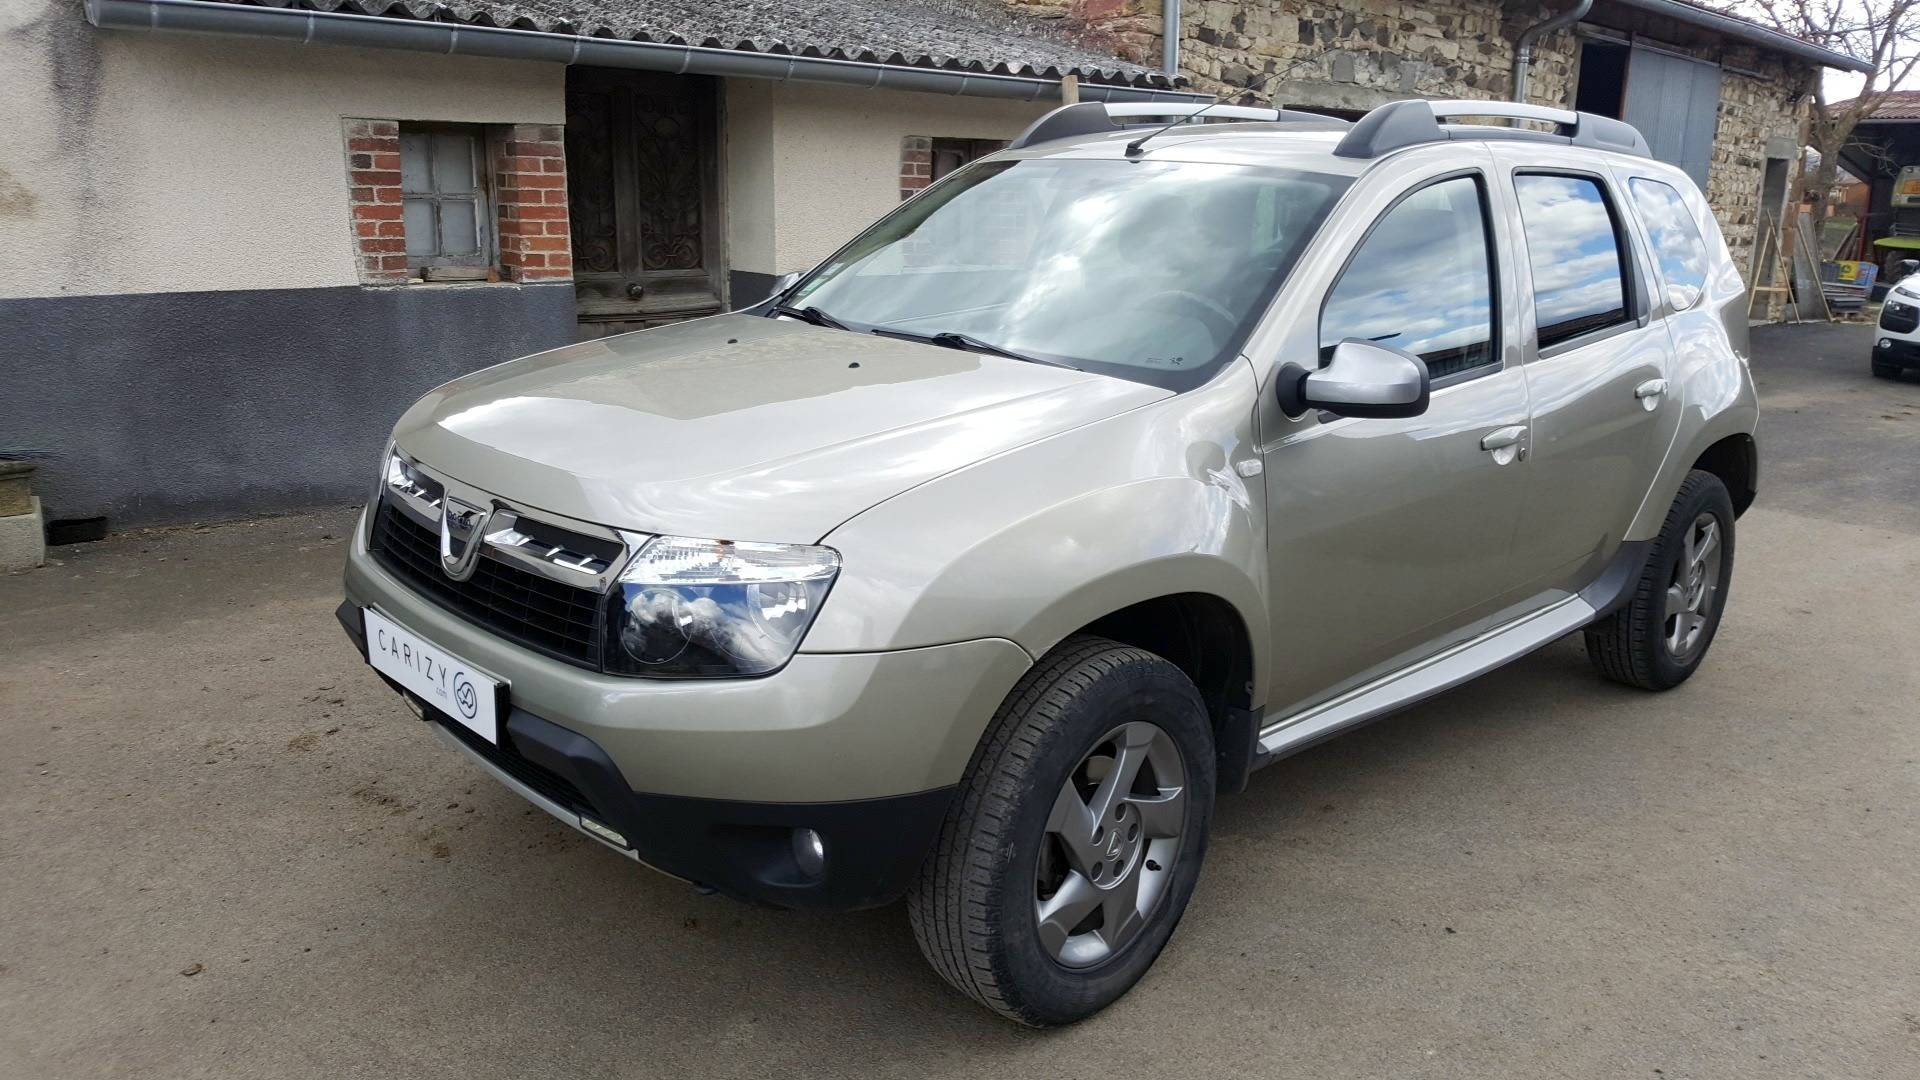 dacia duster d 39 occasion 1 5 dci 110 prestige 4x4 clermont ferrand carizy. Black Bedroom Furniture Sets. Home Design Ideas